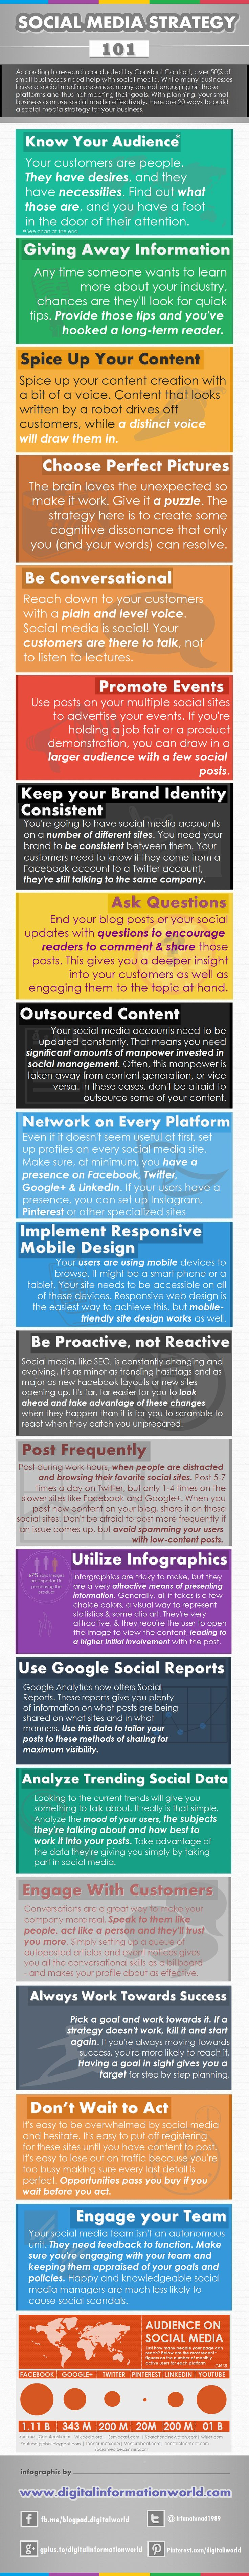 20 way to consider in Social Media Strategies [infographic] #smm